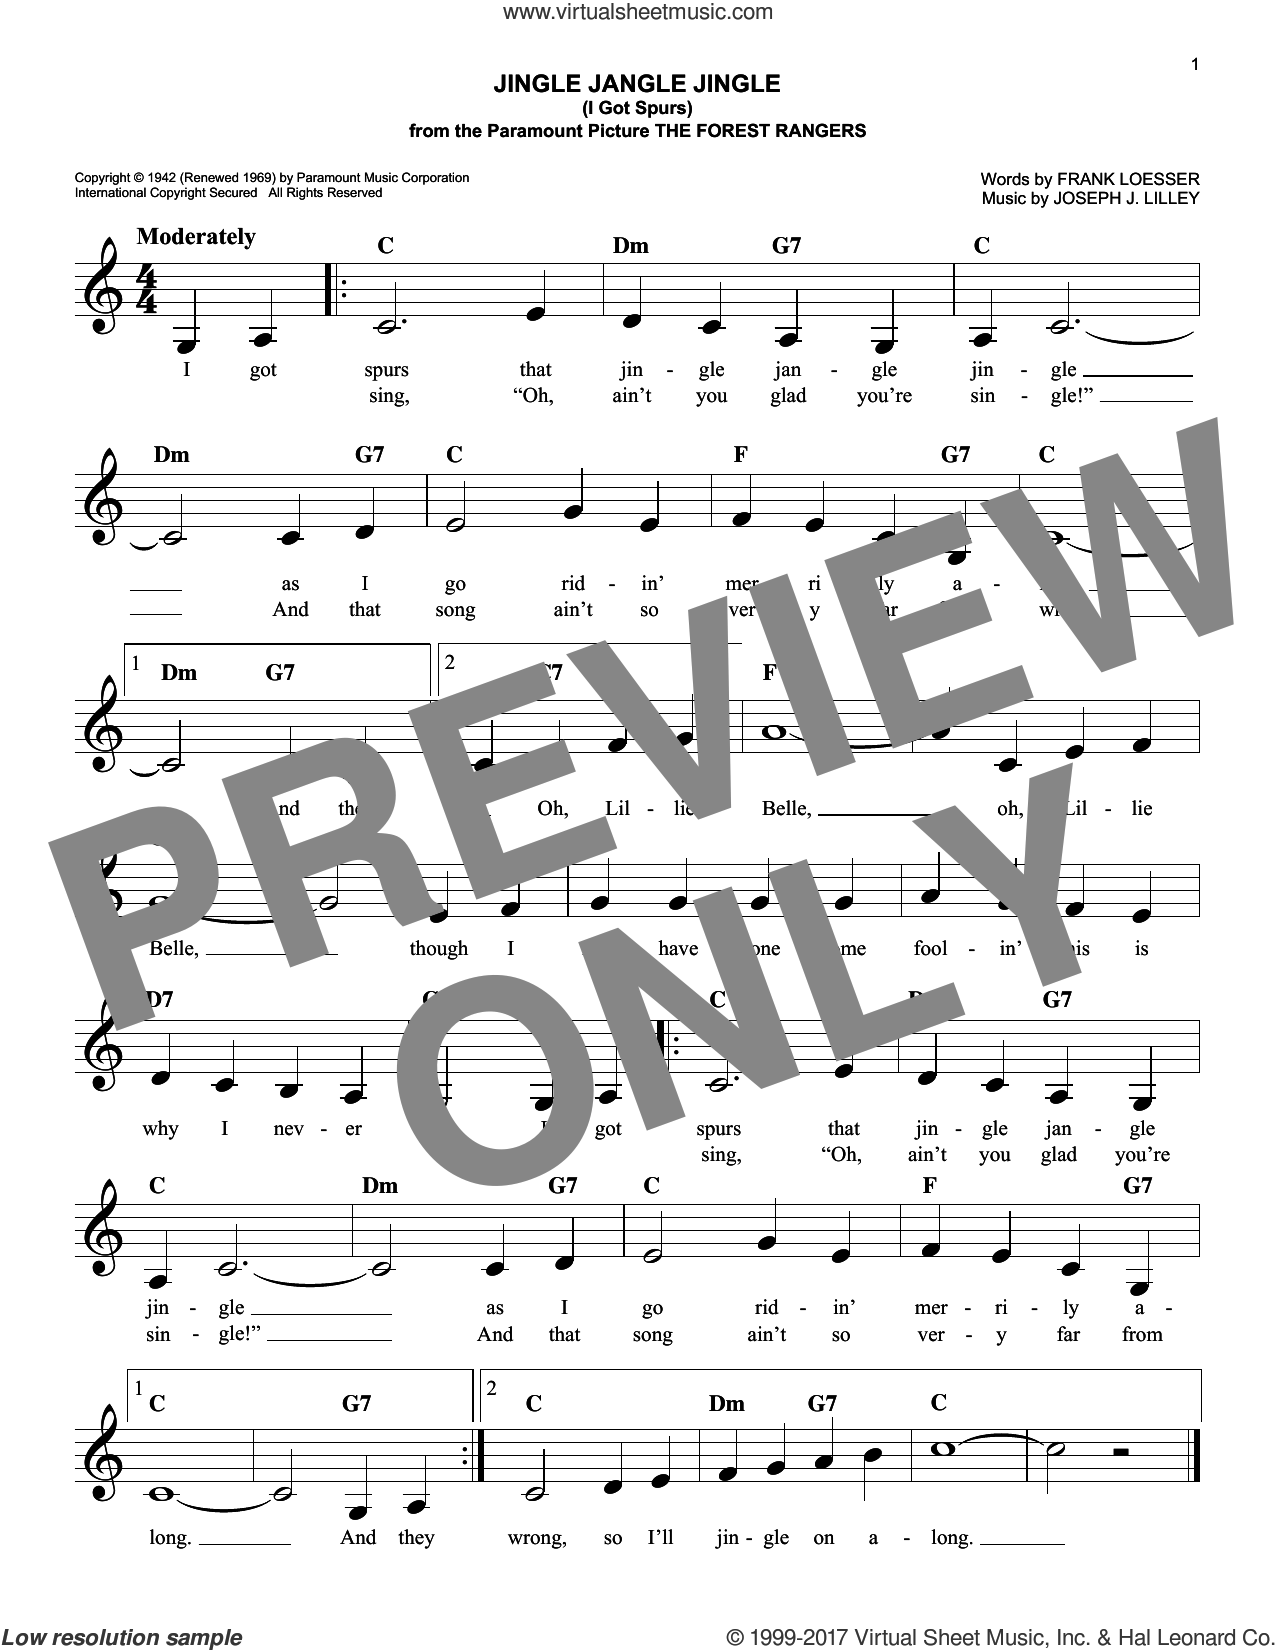 Jingle Jangle Jingle (I Got Spurs) sheet music for voice and other instruments (fake book) by Frank Loesser and Joseph J. Lilley, intermediate skill level